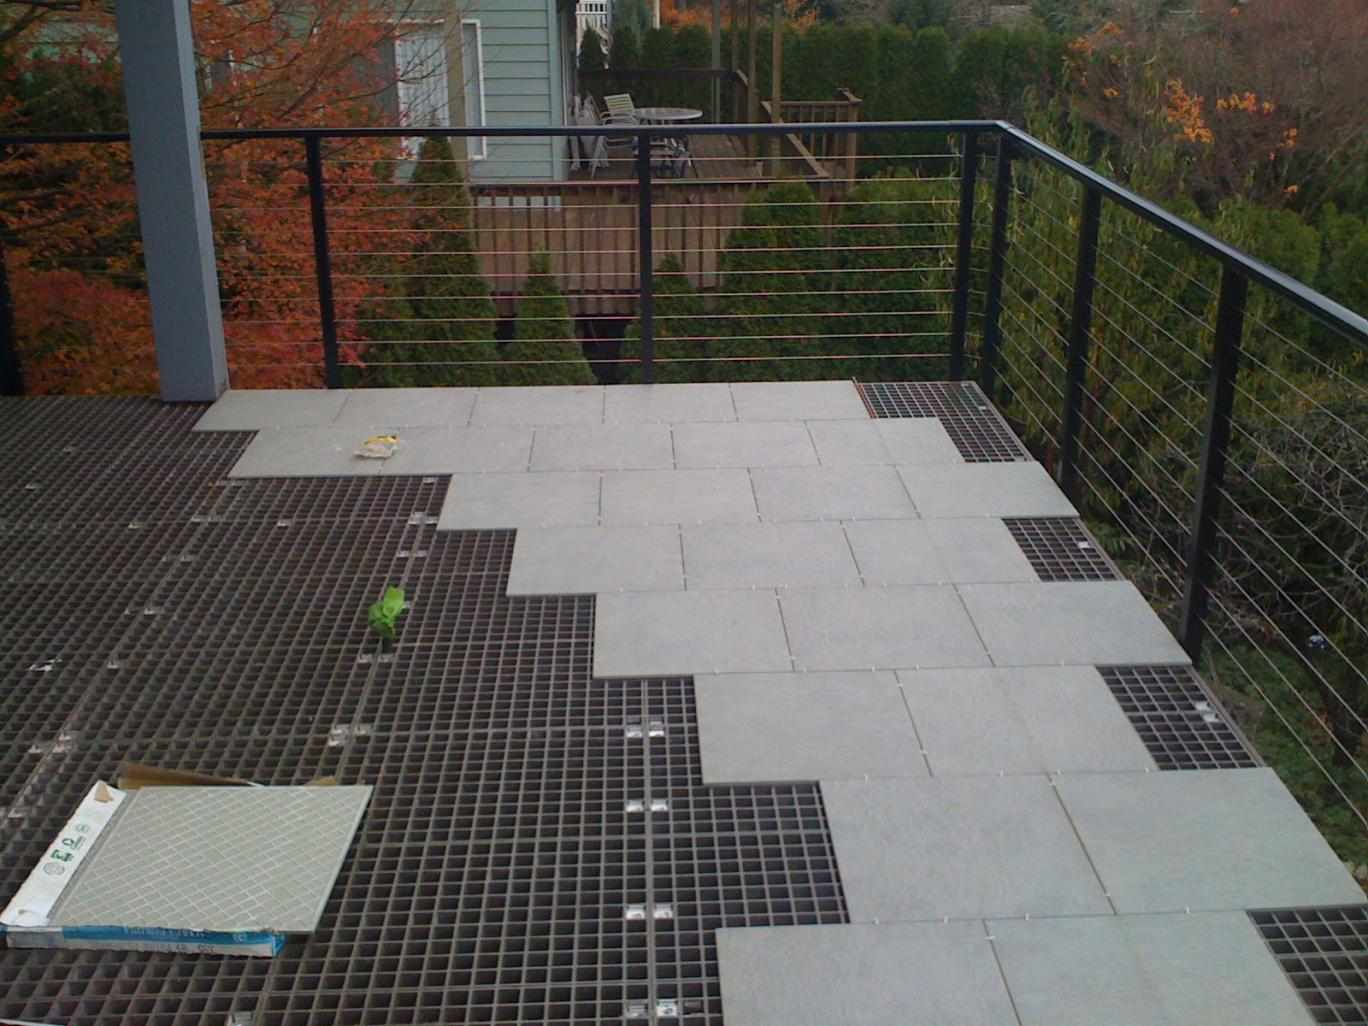 Brick Decks - Page 2 - Decks & Fencing - Contractor Talk